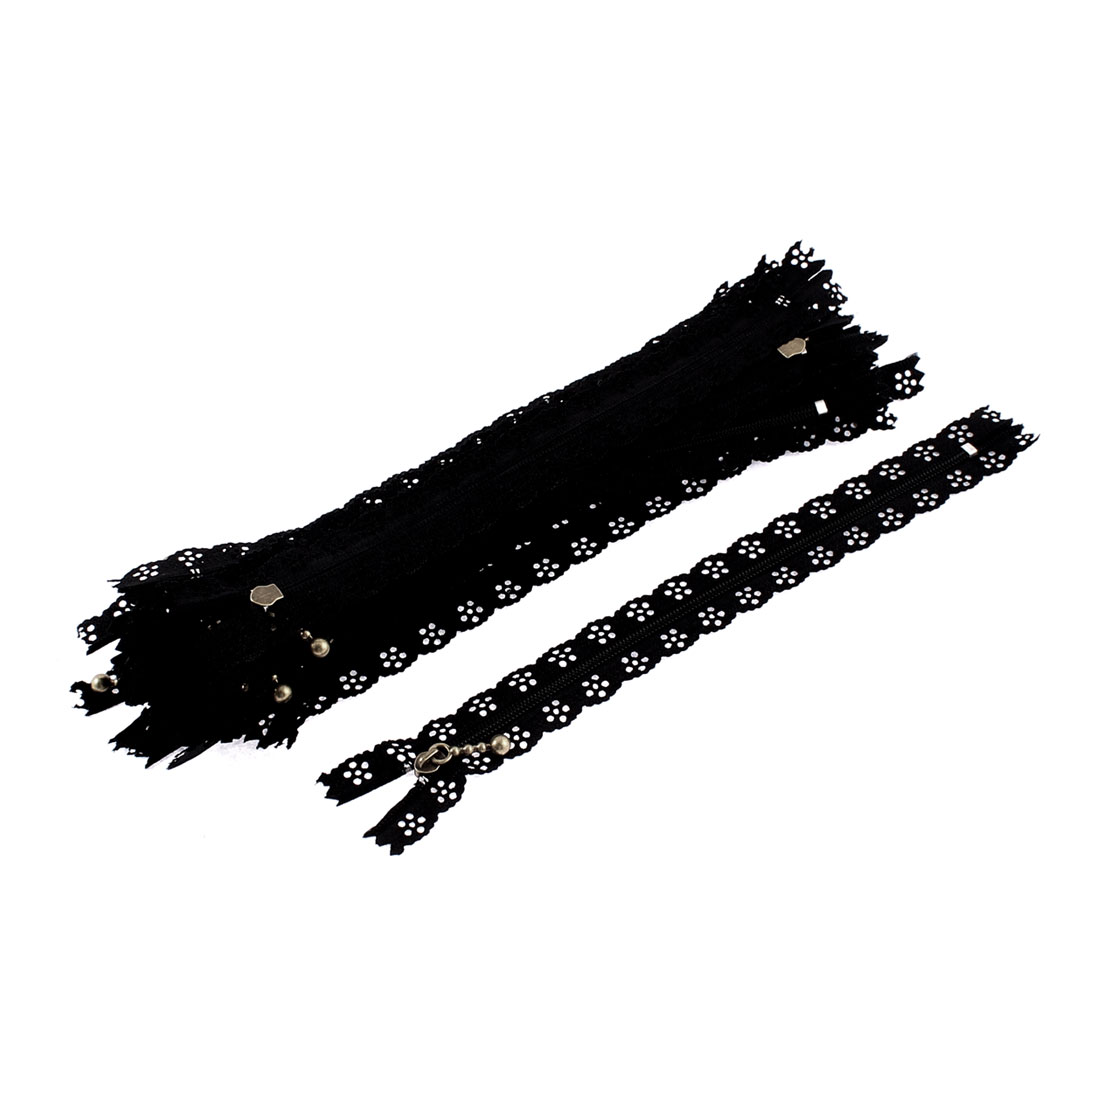 Nylon Coil Zippers Lace Edge Tailor Bag Clothing DIY Craft Black 20cm 20 Pcs